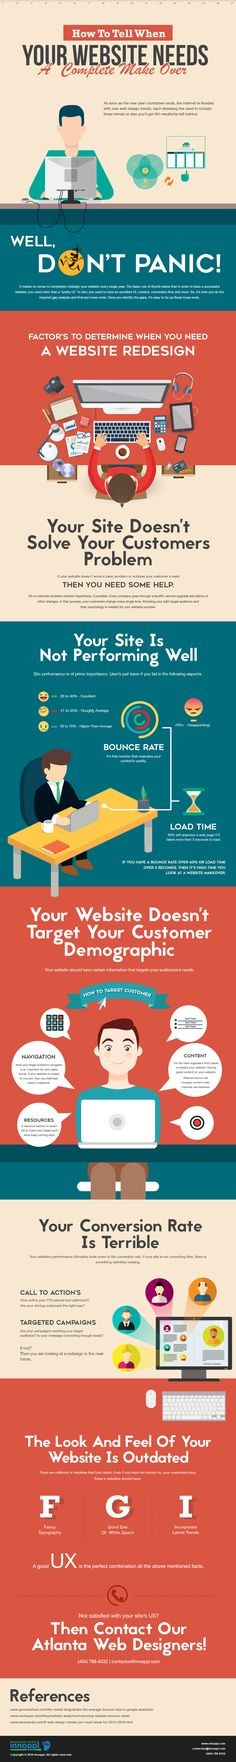 """Do I need a website redesign?"" It's a common question every website owner's mind when their website doesn't perform up to their expectations. The fact is that the trends change every year. This infographic by Innoppl highlights on various key factors that denotes your site's success."